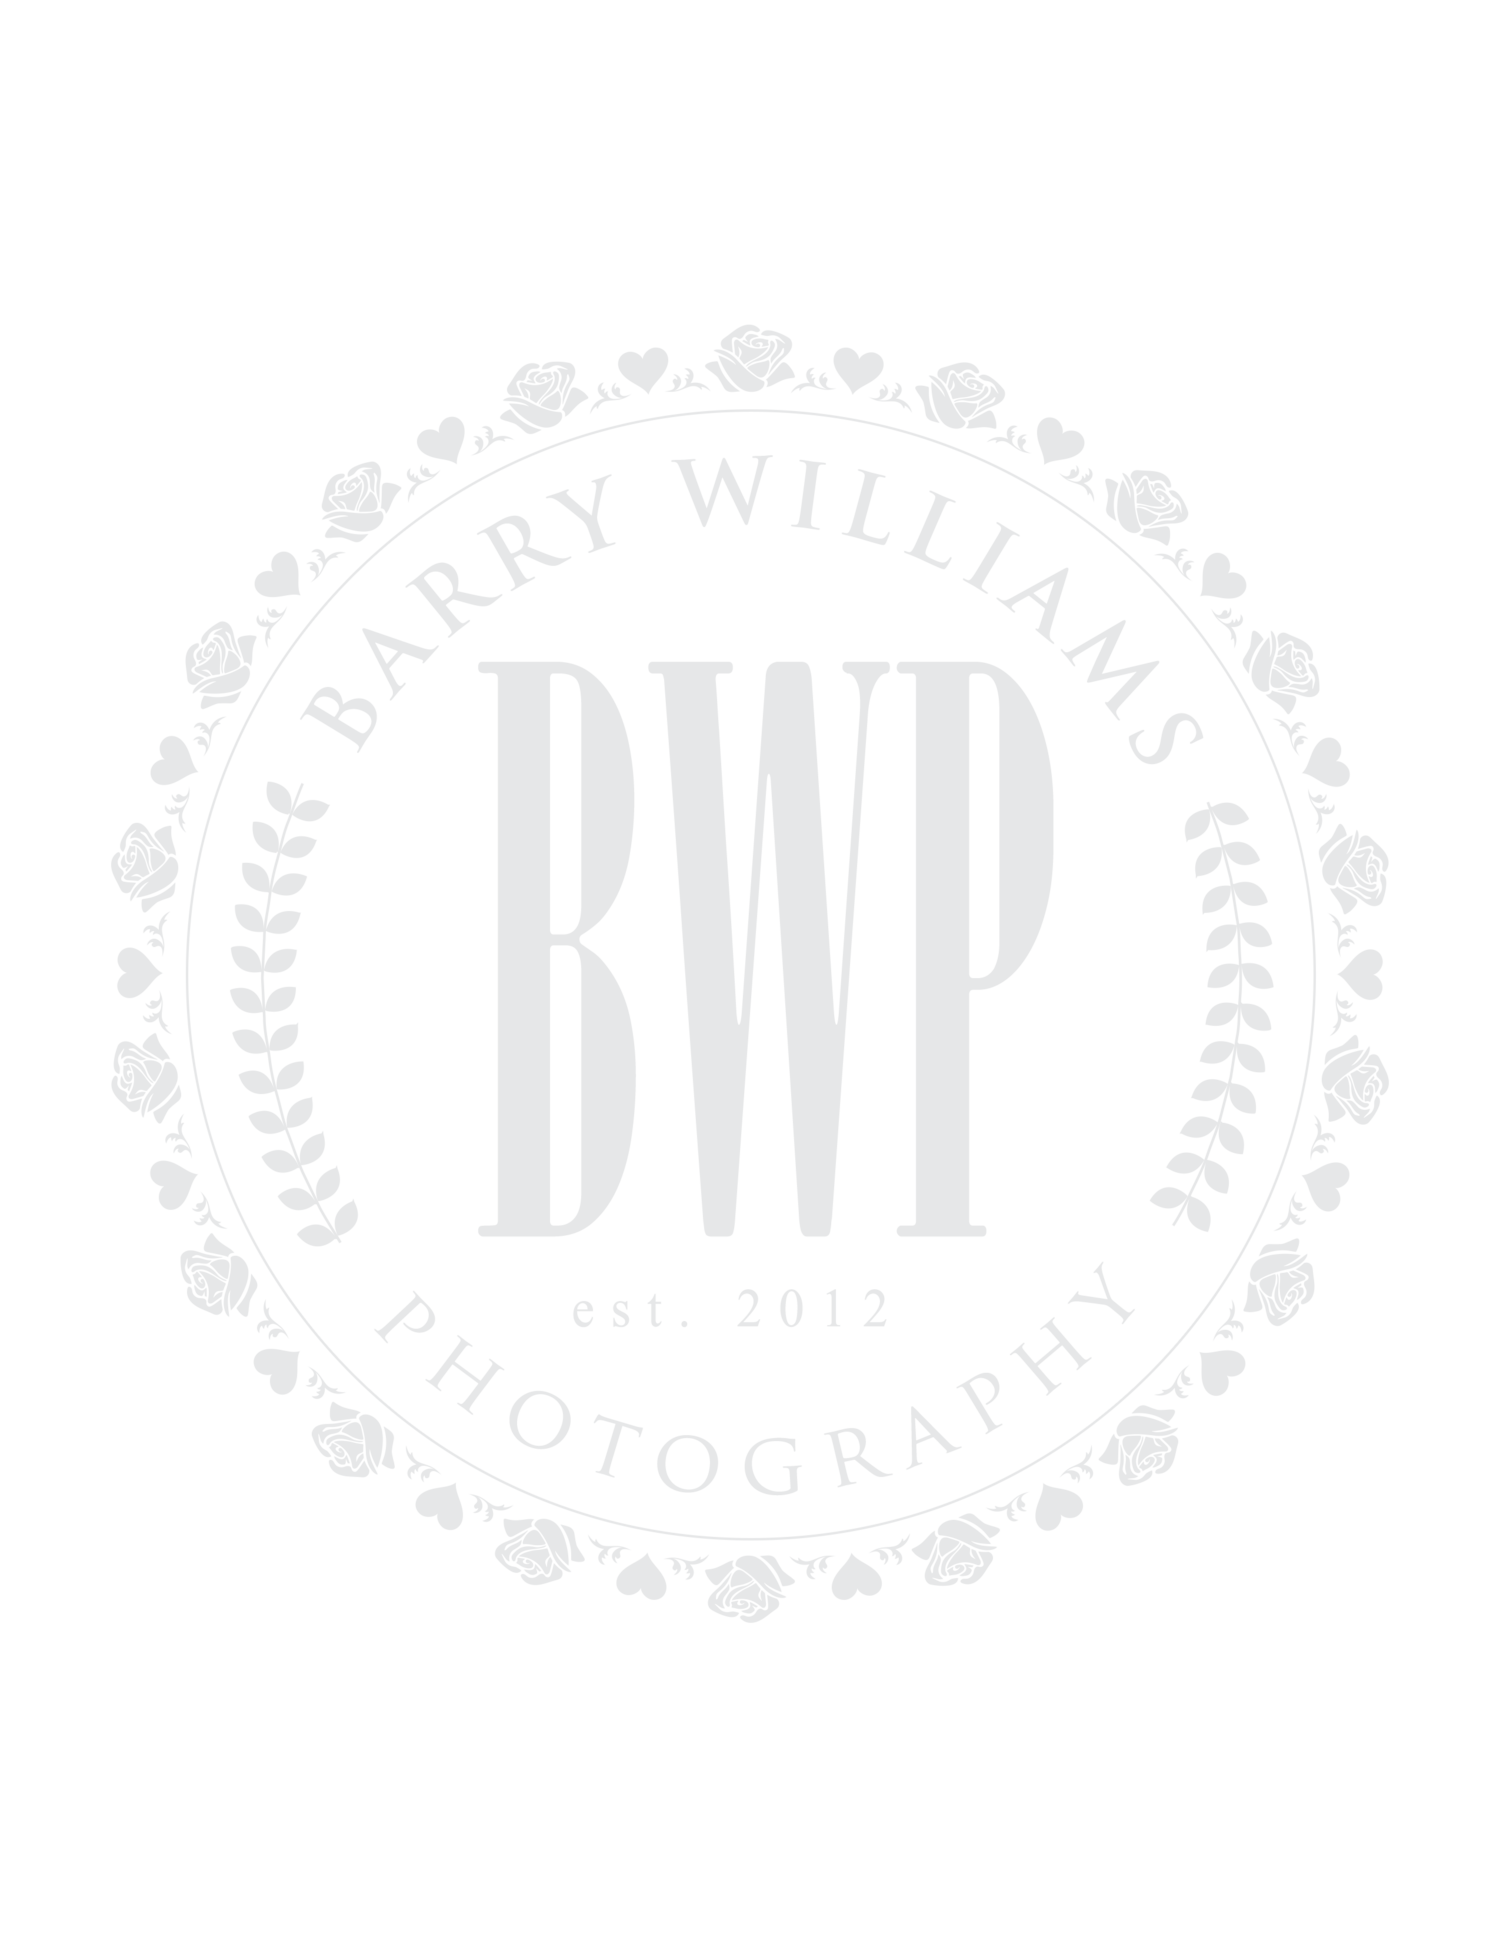 Barry Williams Photography